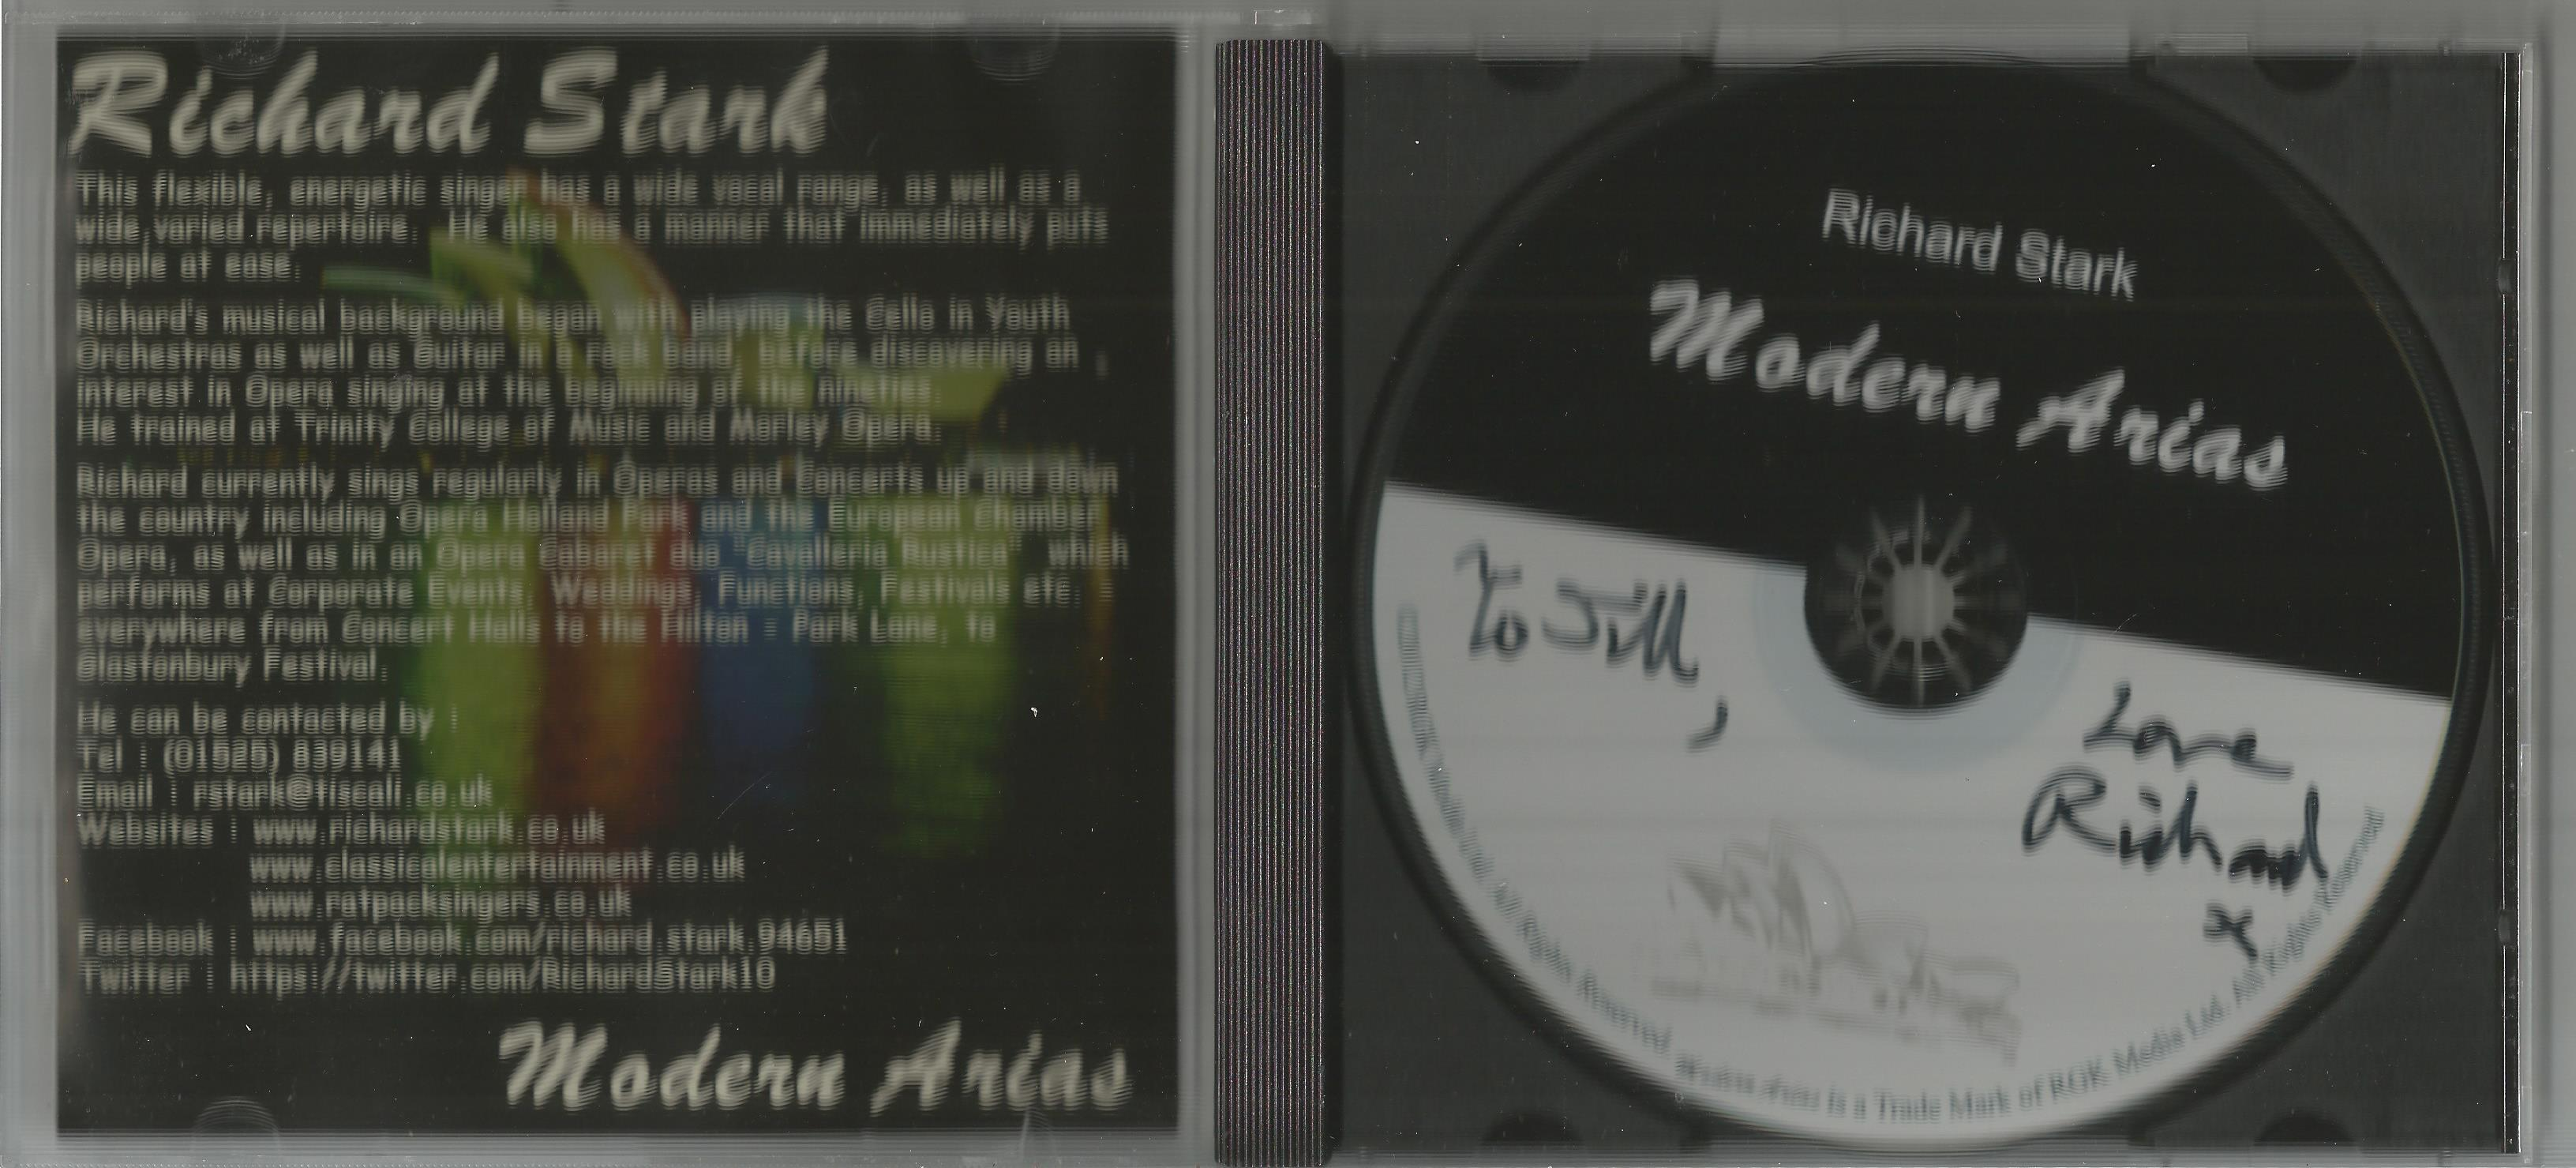 6 Signed CDs Including Emily Levy (Lost and Found) Disc Included, Junkie XL (Catch up to my Step) - Image 2 of 4